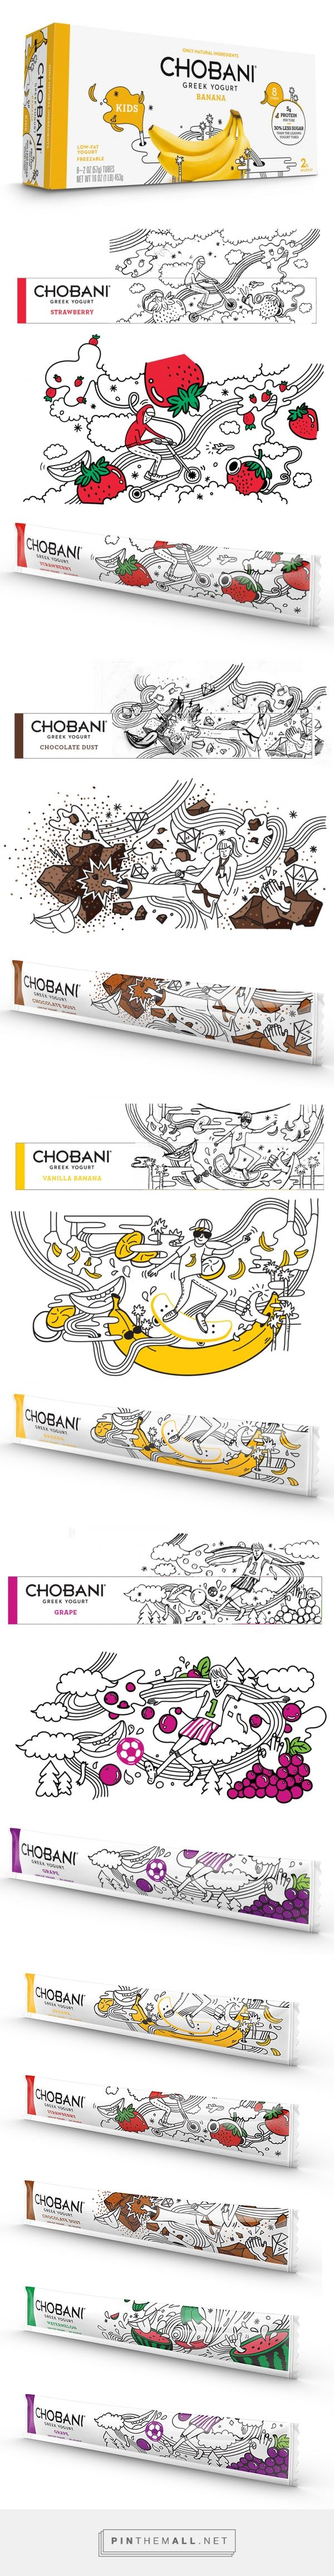 Chobani Yogurt Kids — The Dieline | Packaging & Branding Design & Innovation News